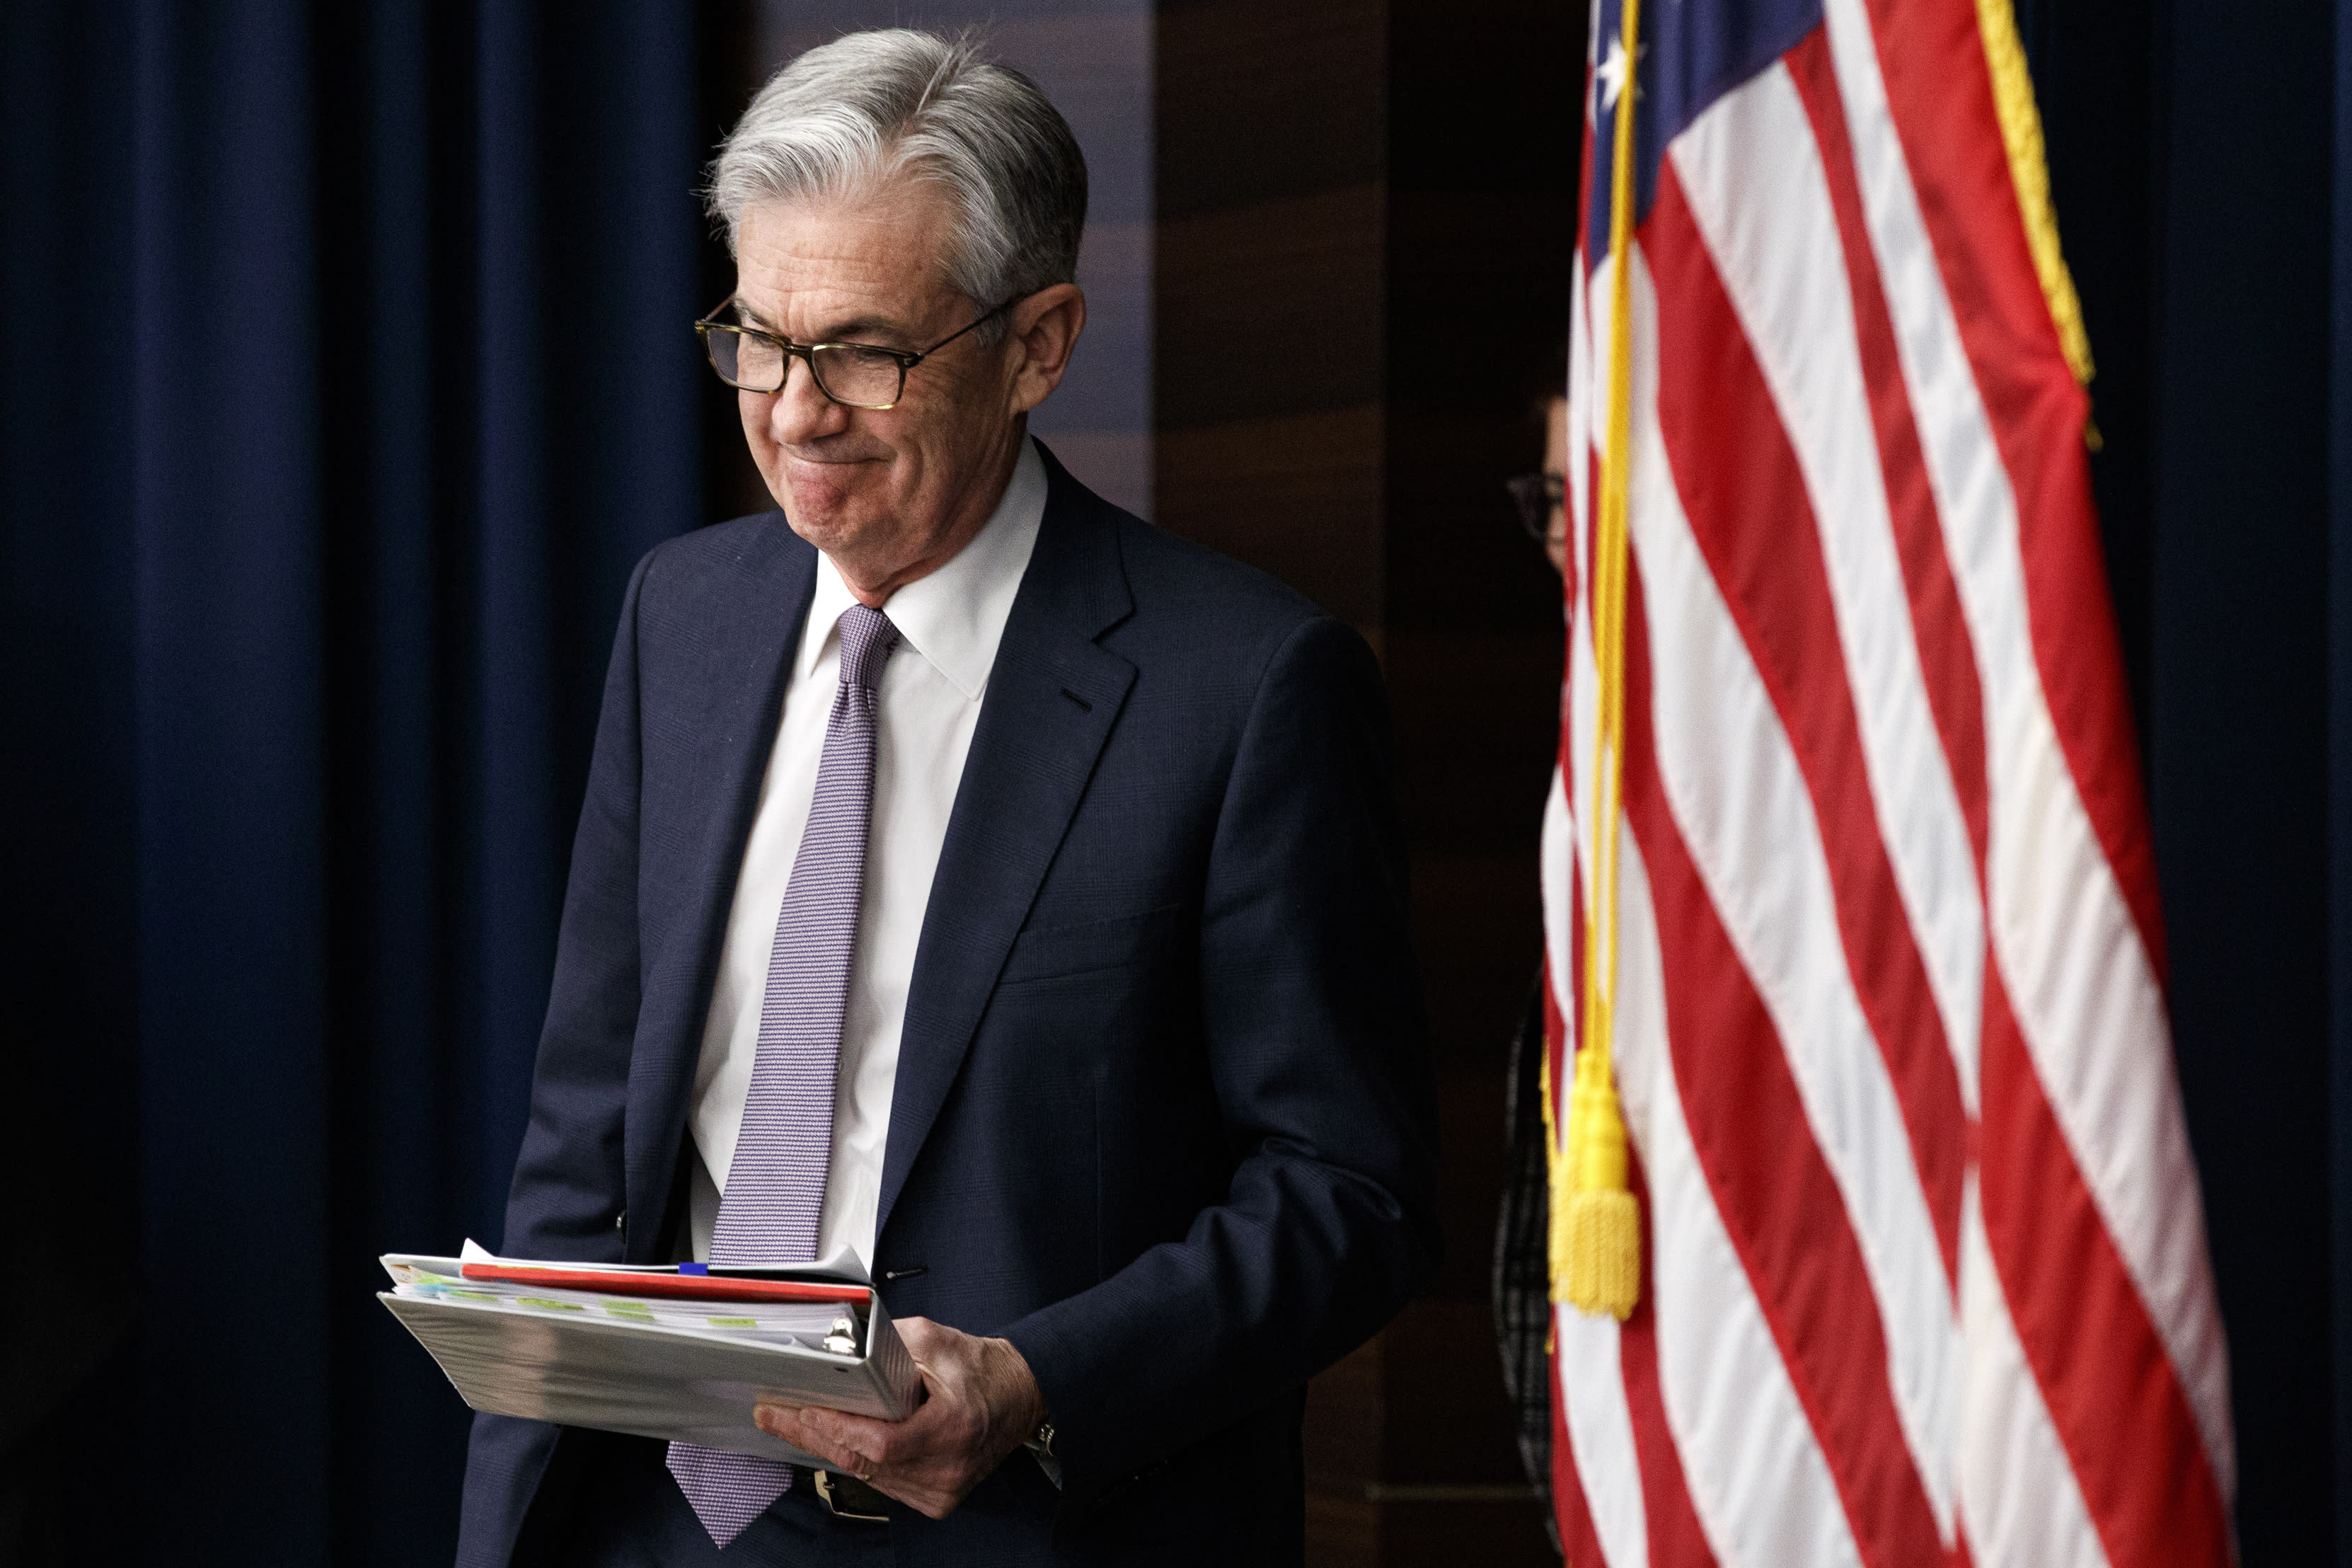 US Fed policymakers signal broad agreement on monetary policy, economy